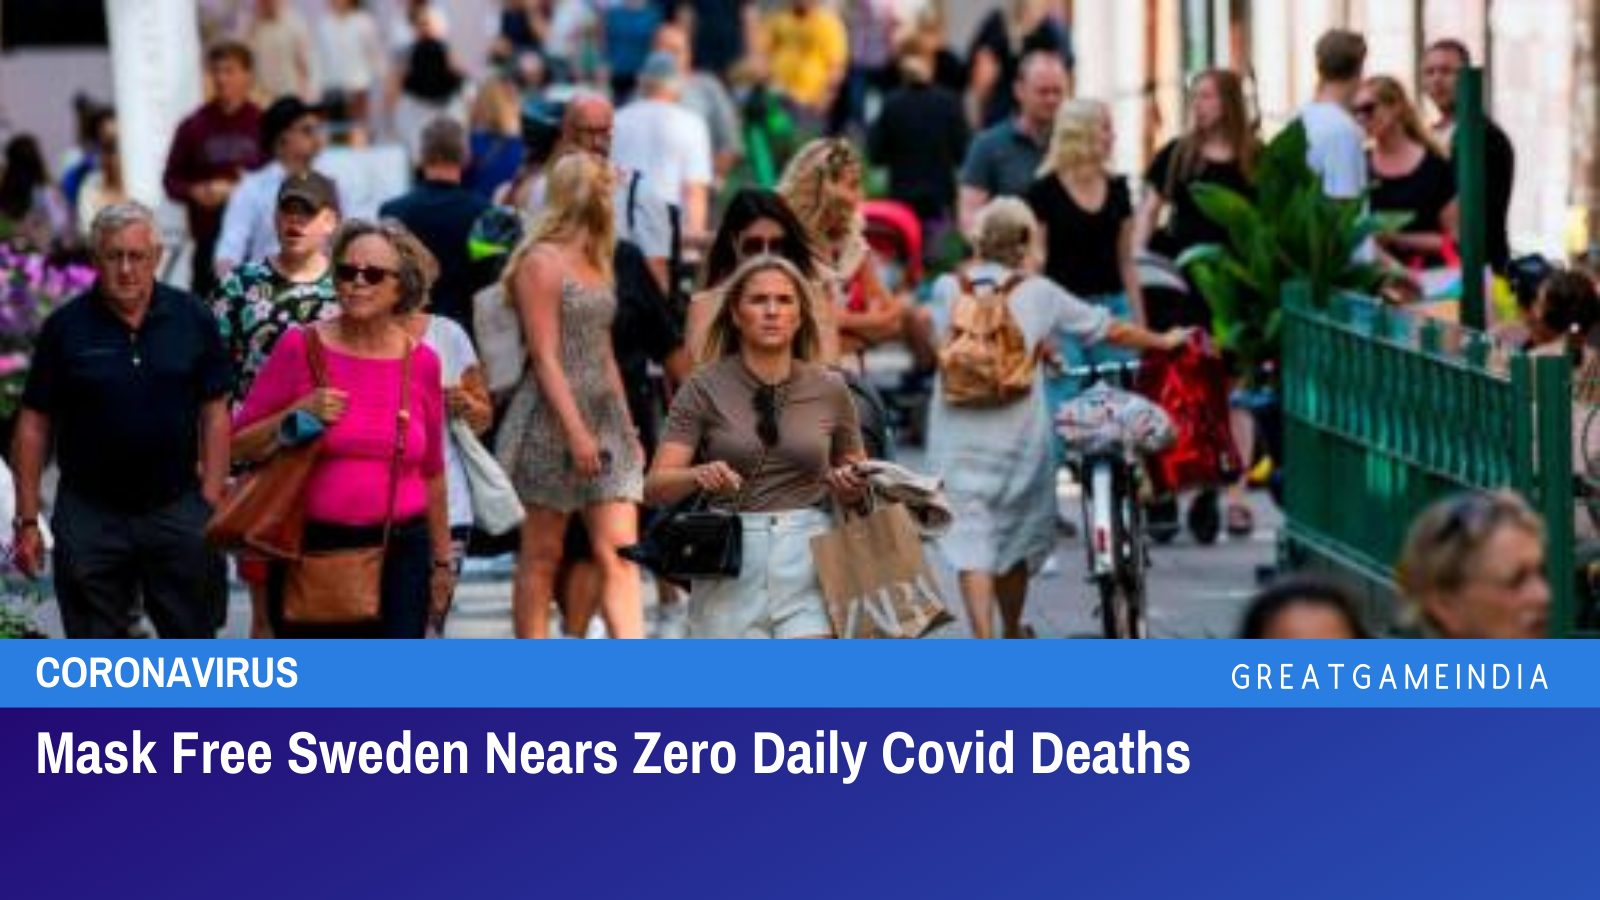 Mask Free Sweden Nears Zero Daily Covid Deaths